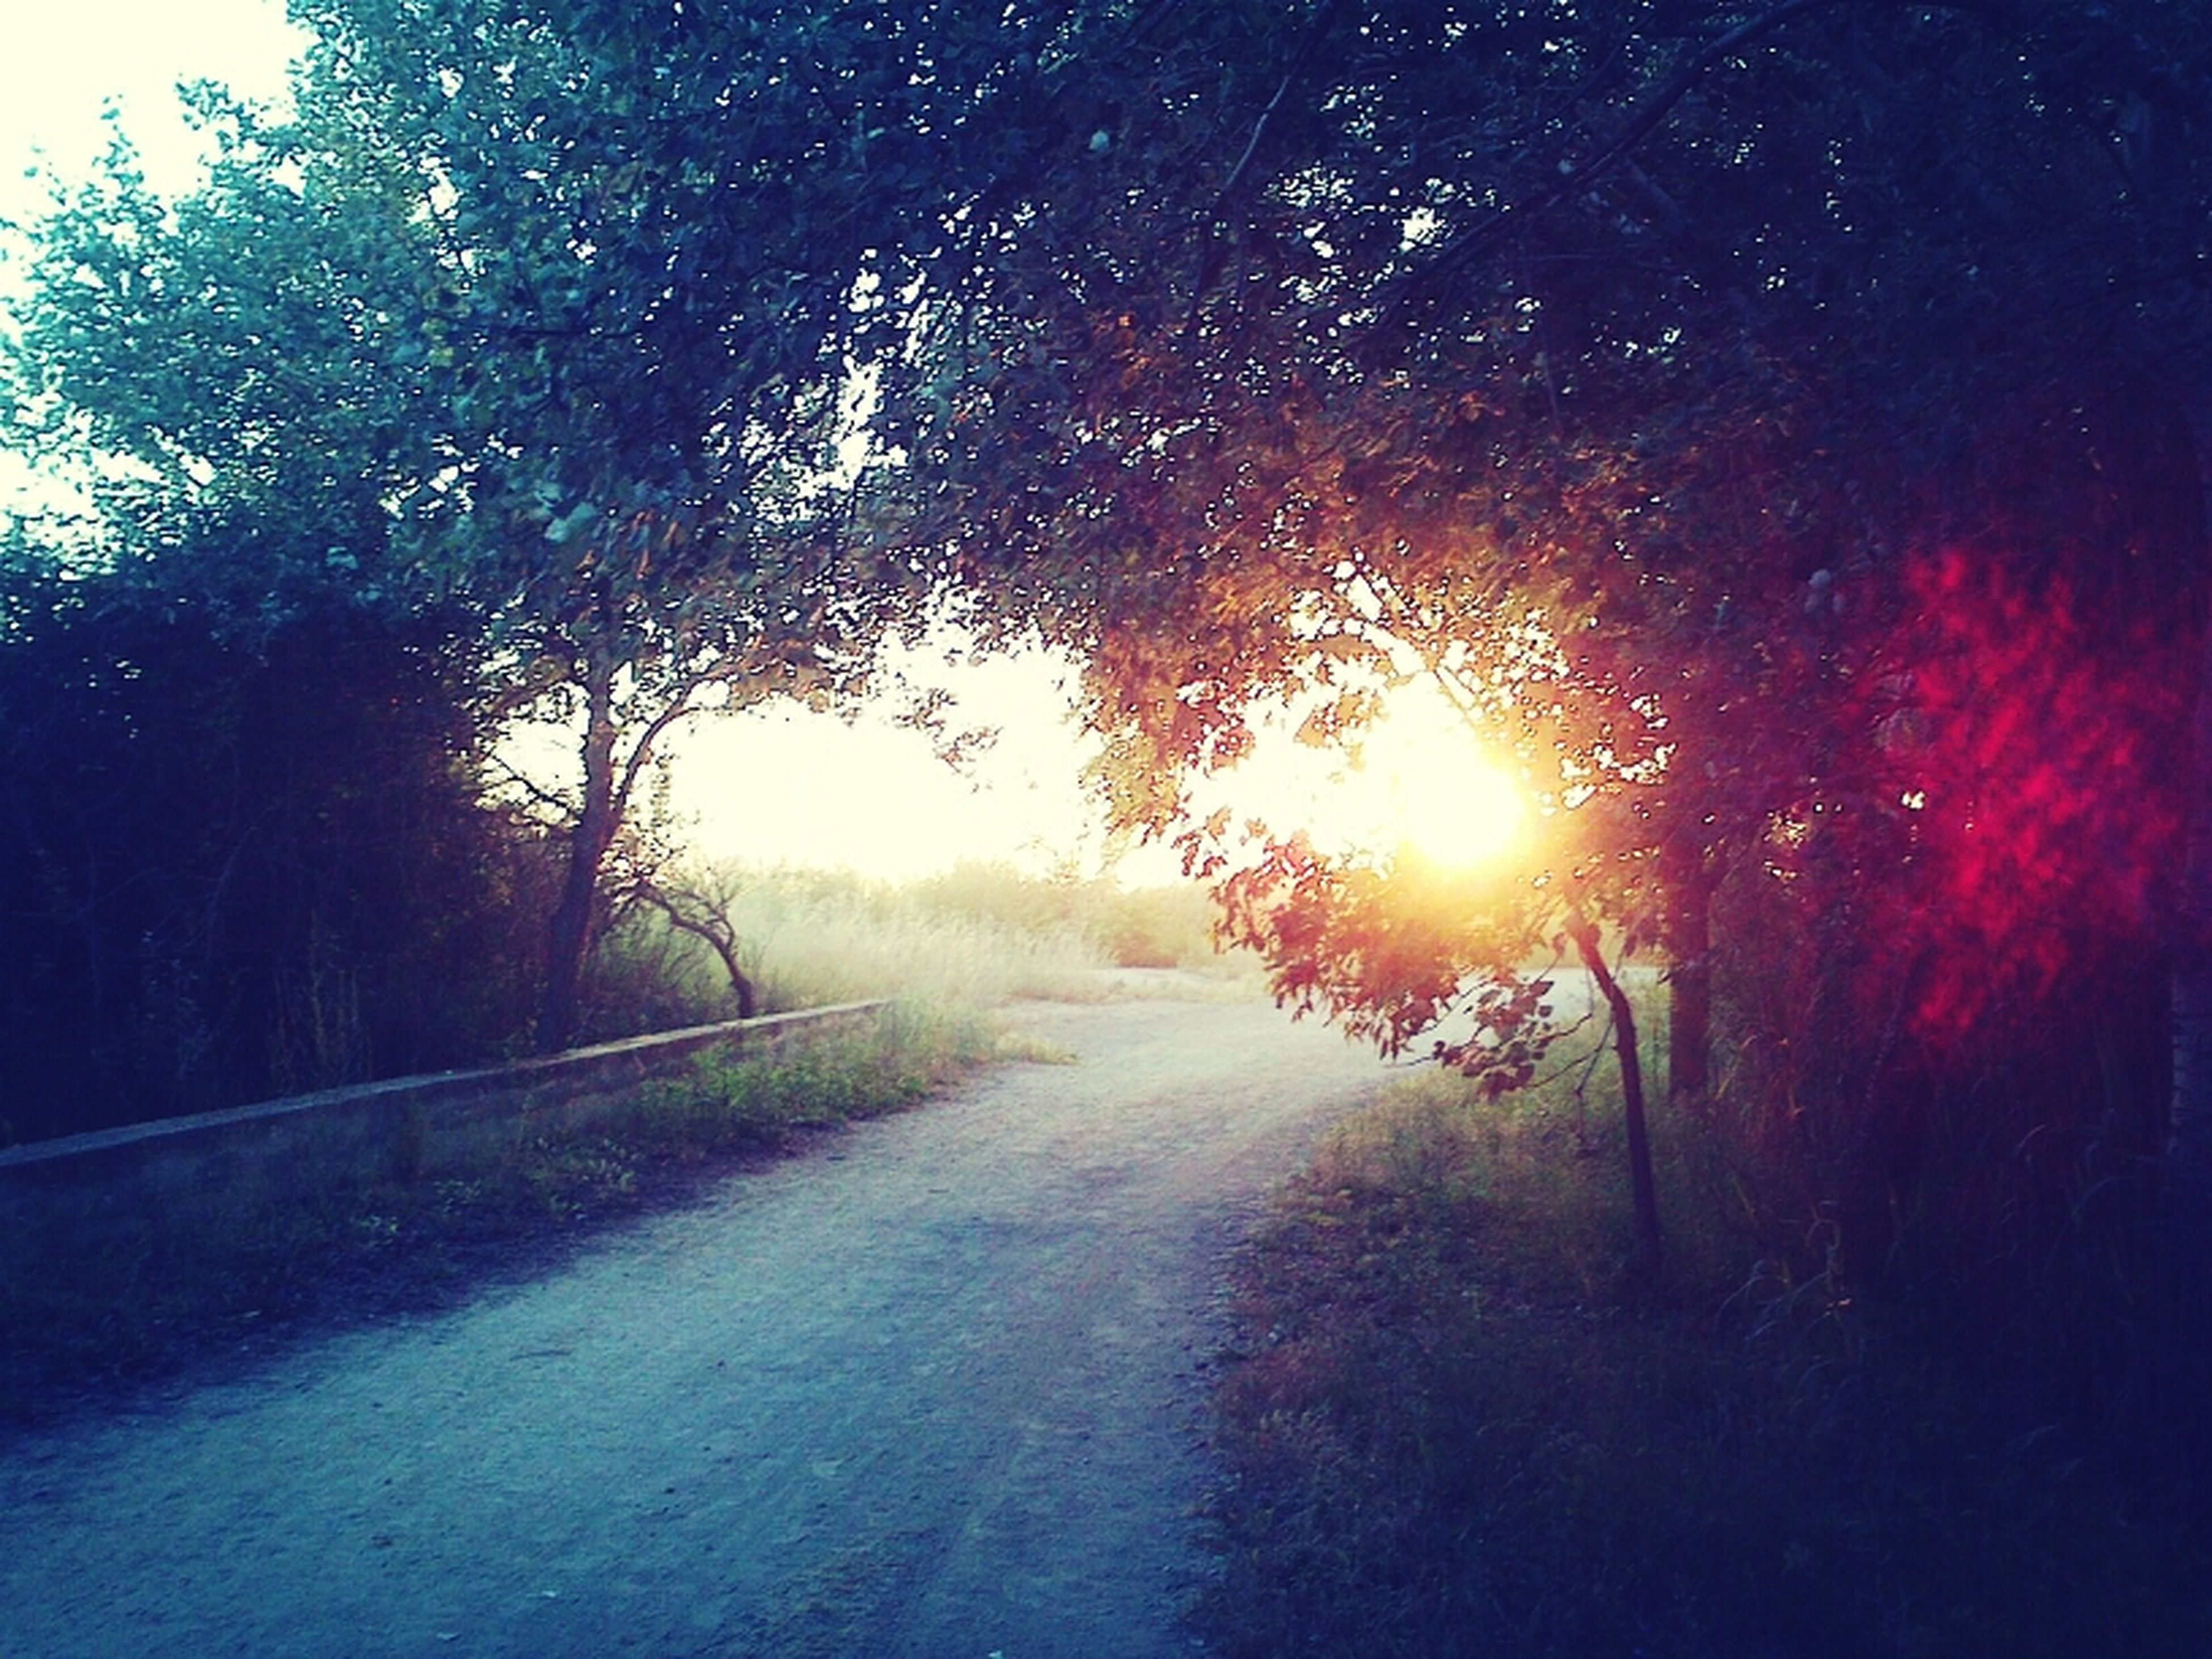 the way forward, road, tree, transportation, diminishing perspective, vanishing point, tranquility, sun, sunlight, country road, tranquil scene, nature, empty road, sky, sunset, street, beauty in nature, empty, scenics, no people